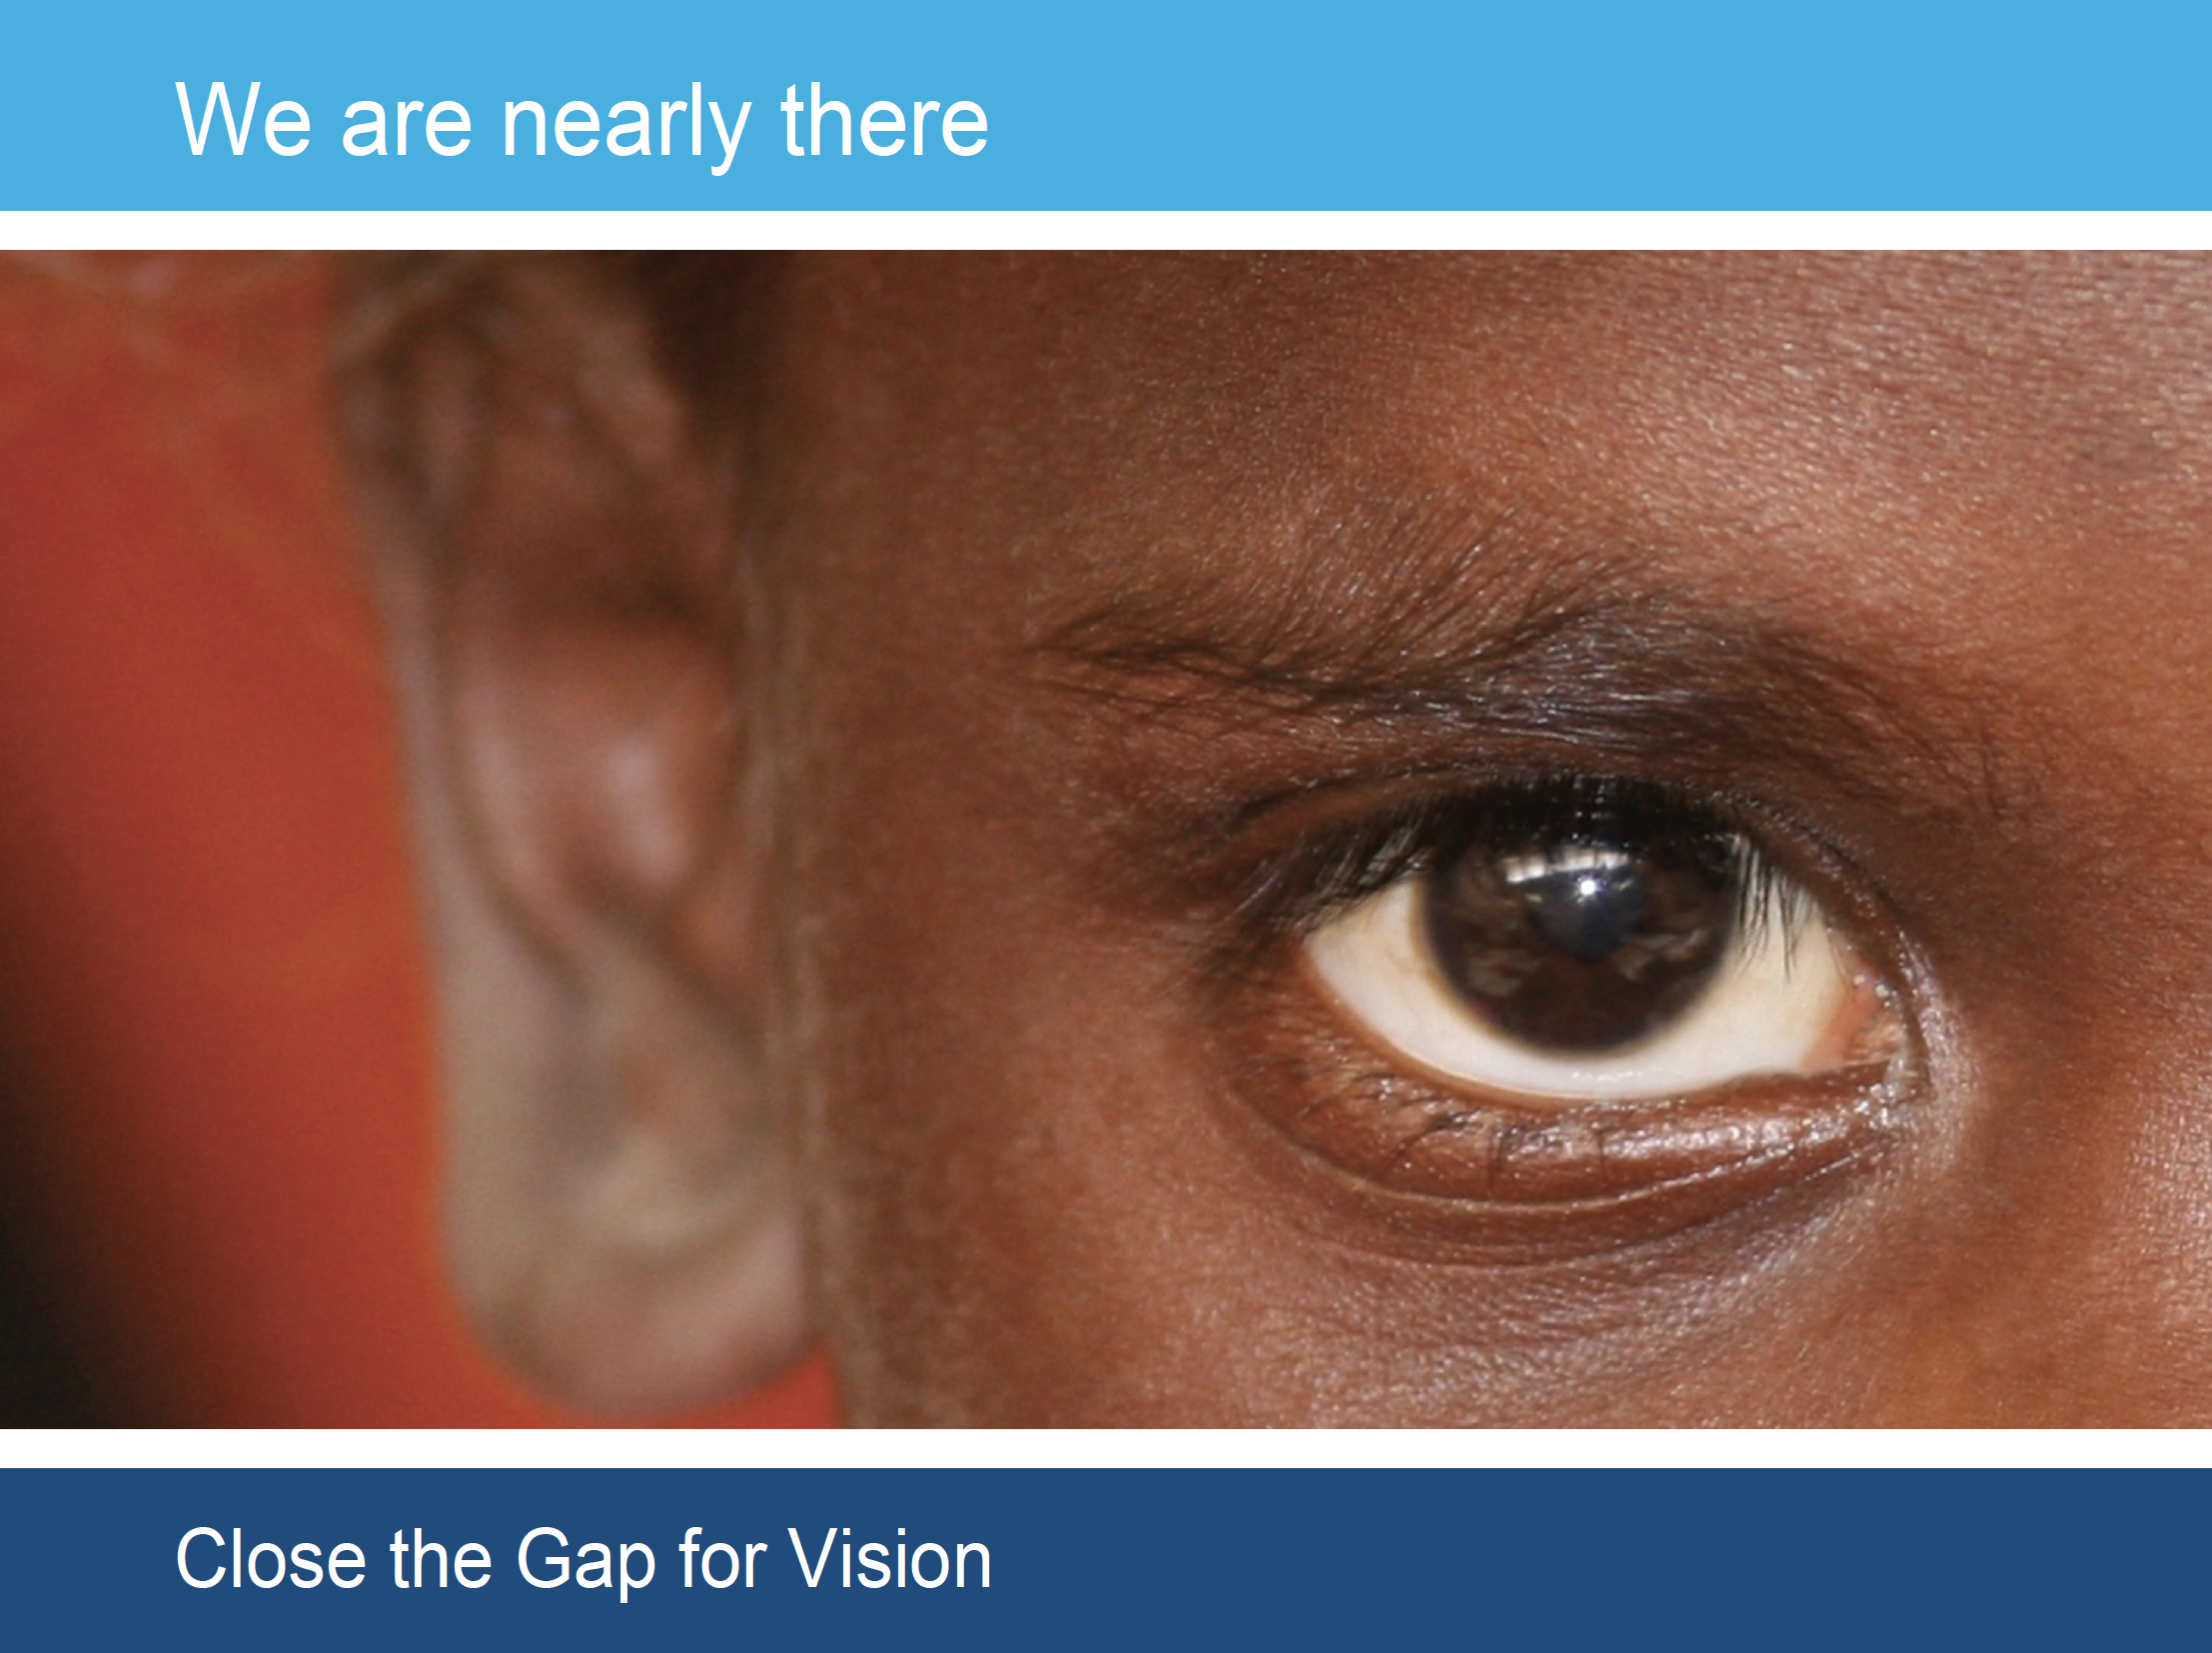 We are nearly there. Close the Gap for Vision. McKinsey Report, 2017